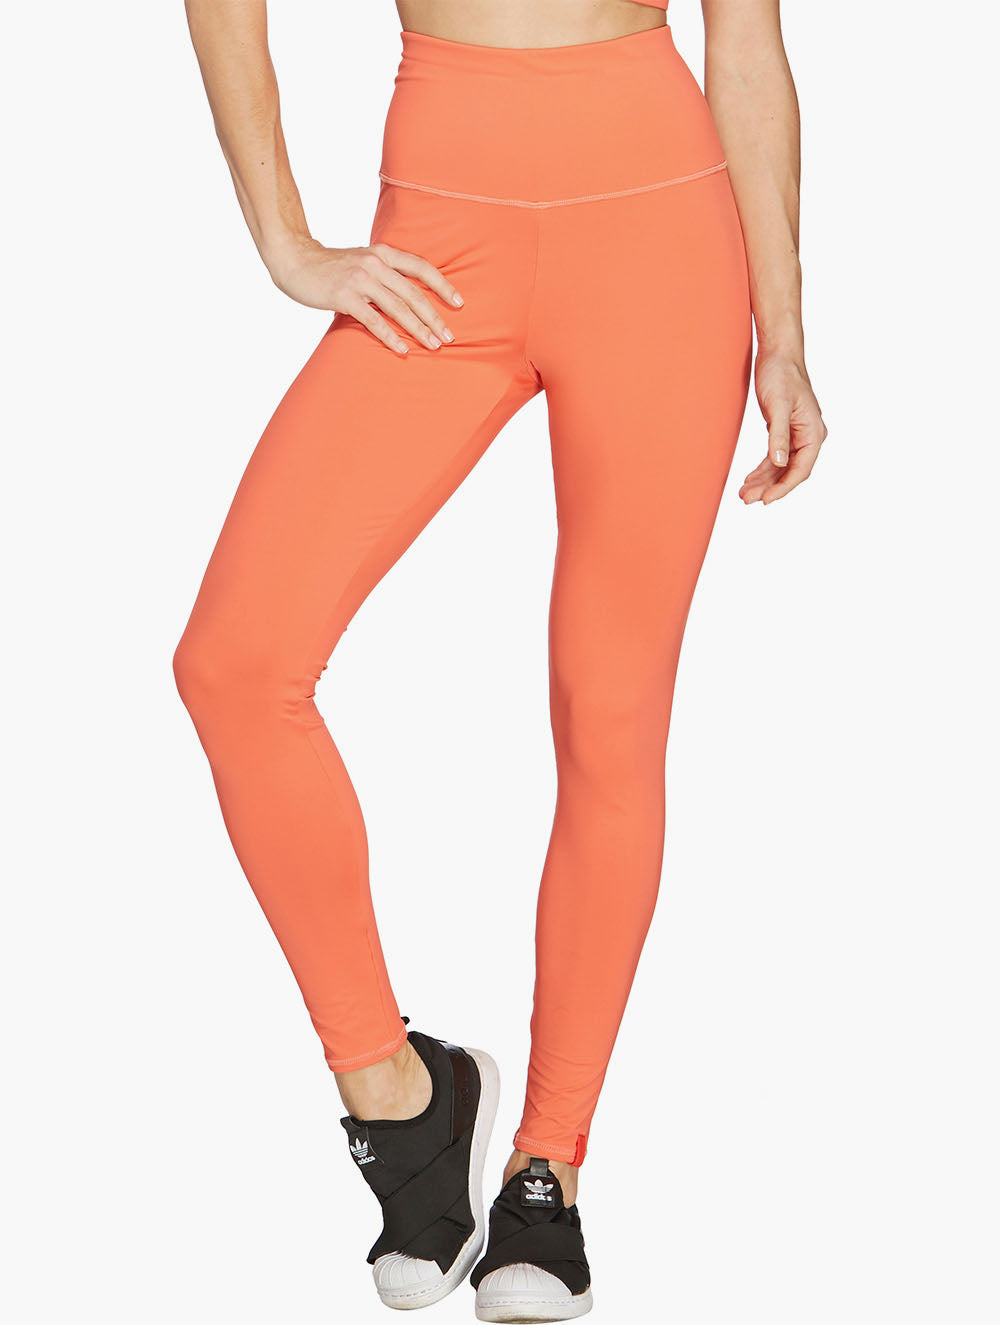 Need Legging